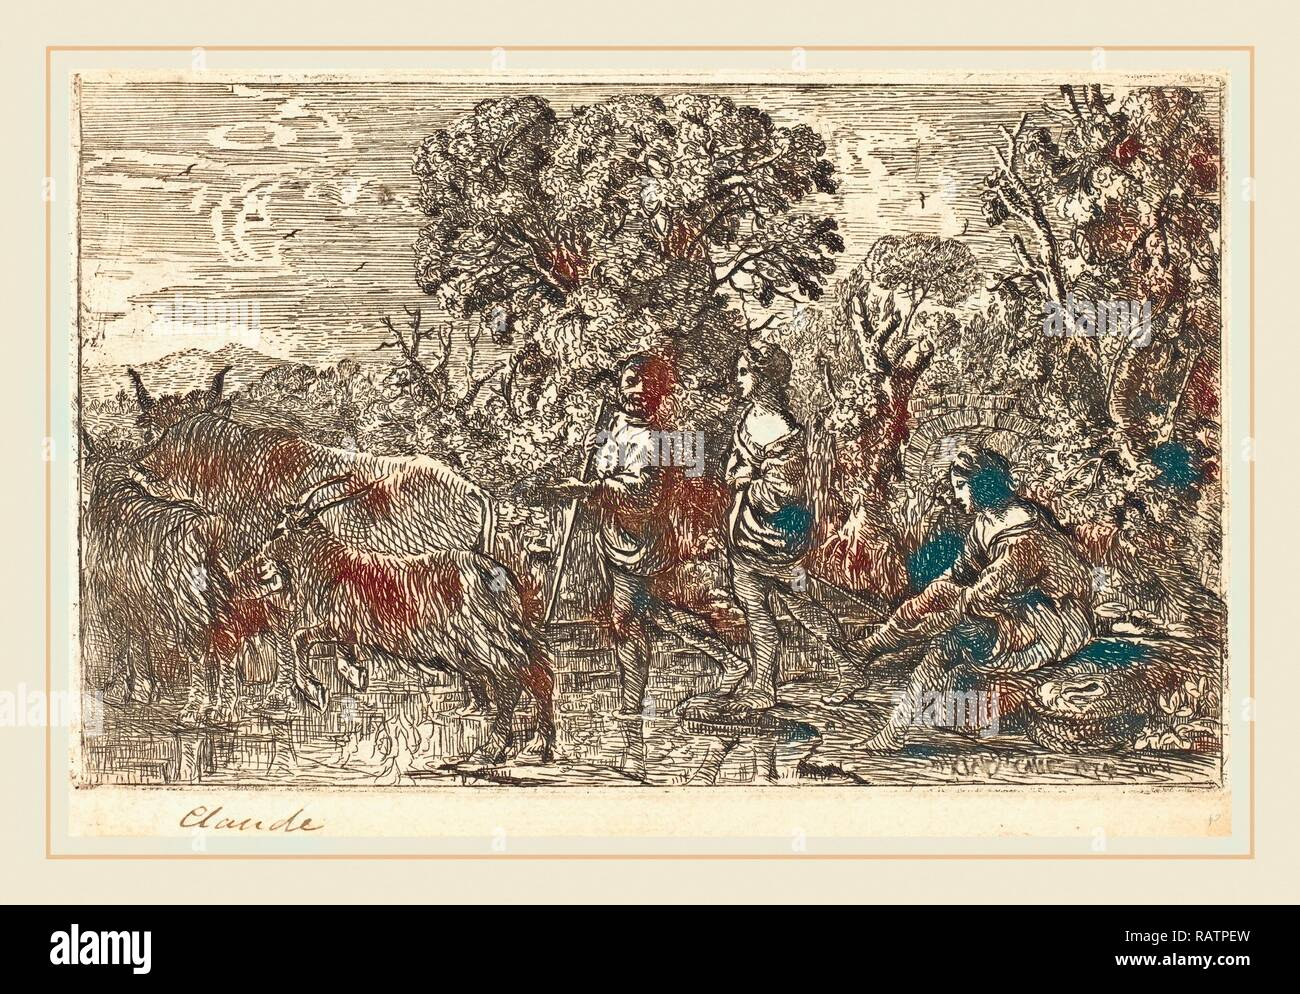 Claude Lorrain, French (1604-1605-1682), The Ford (Le passage du gué), 1634, etching. Reimagined by Gibon. Classic reimagined - Stock Image